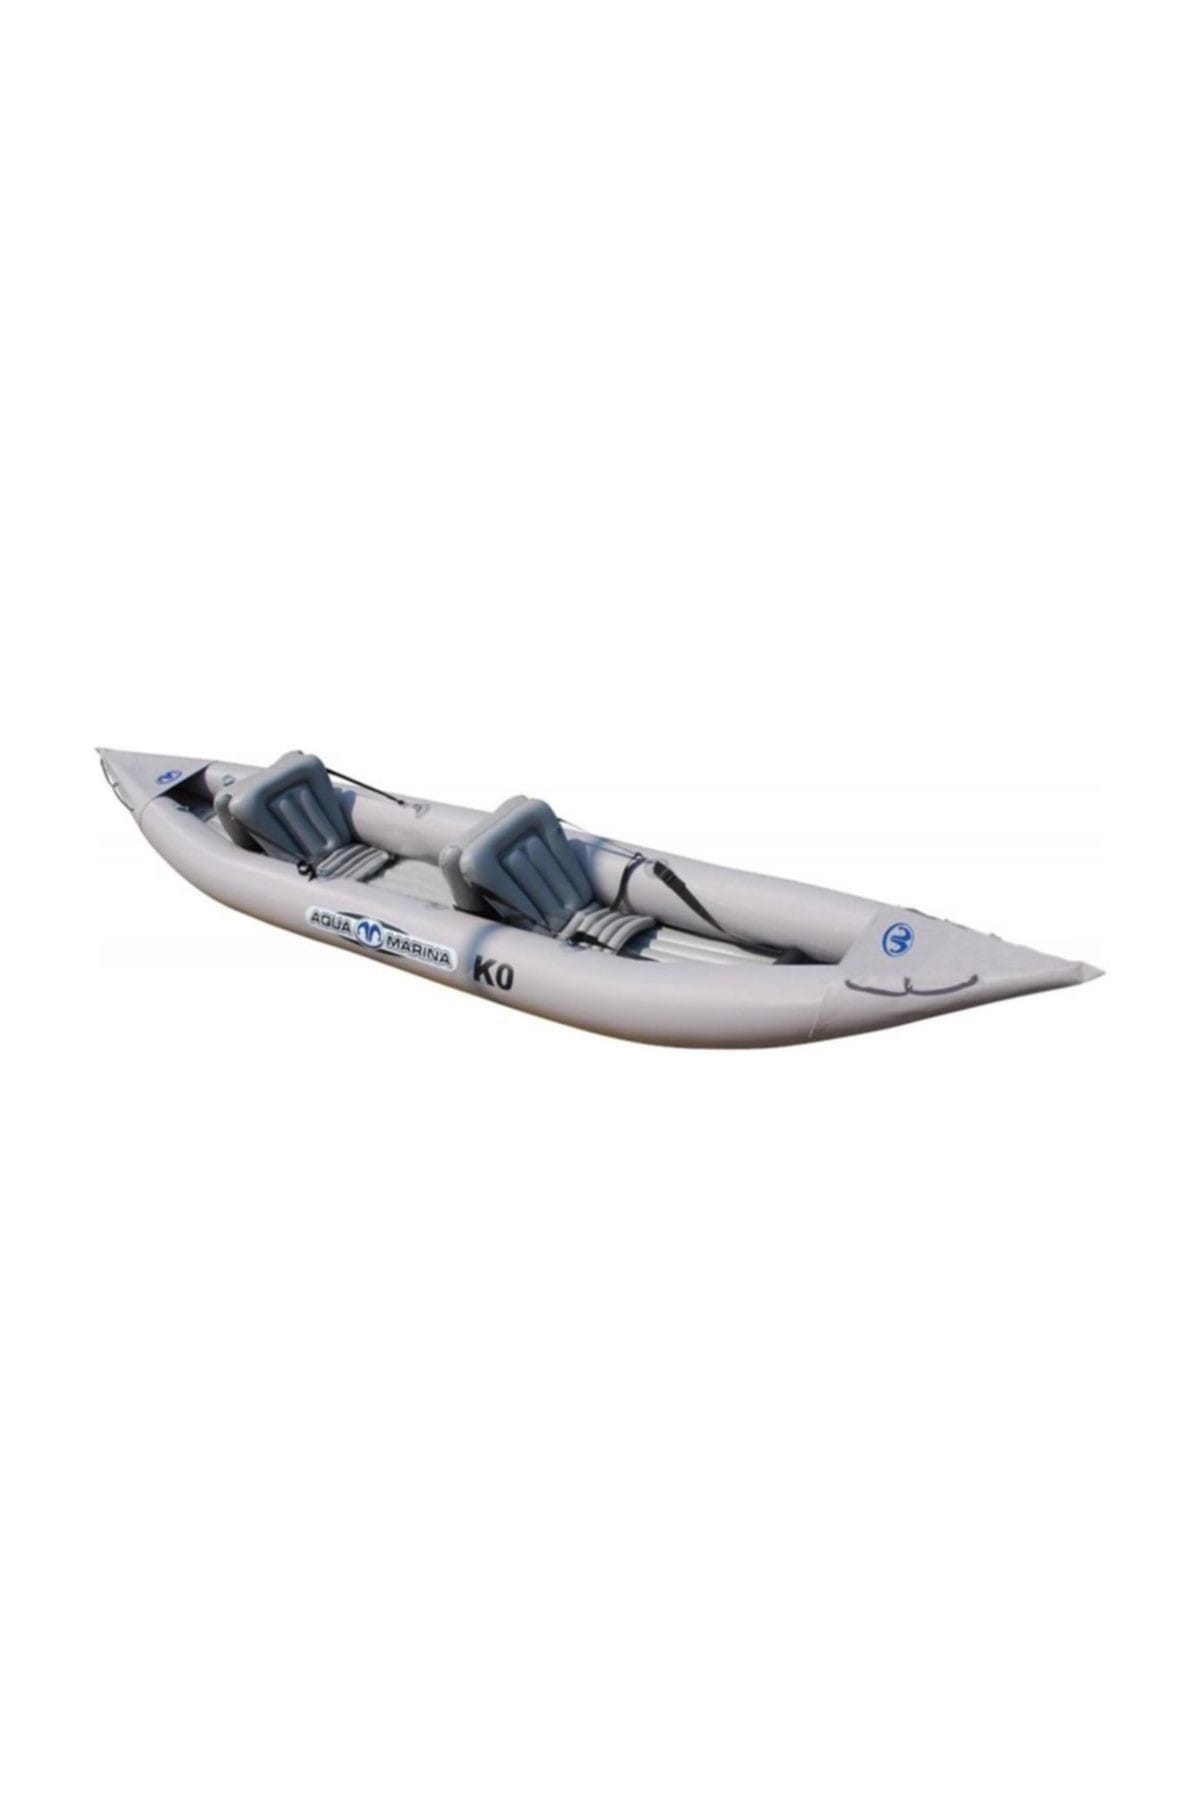 Aqua Marina K0 Leisure Kayak Inflatable Floor